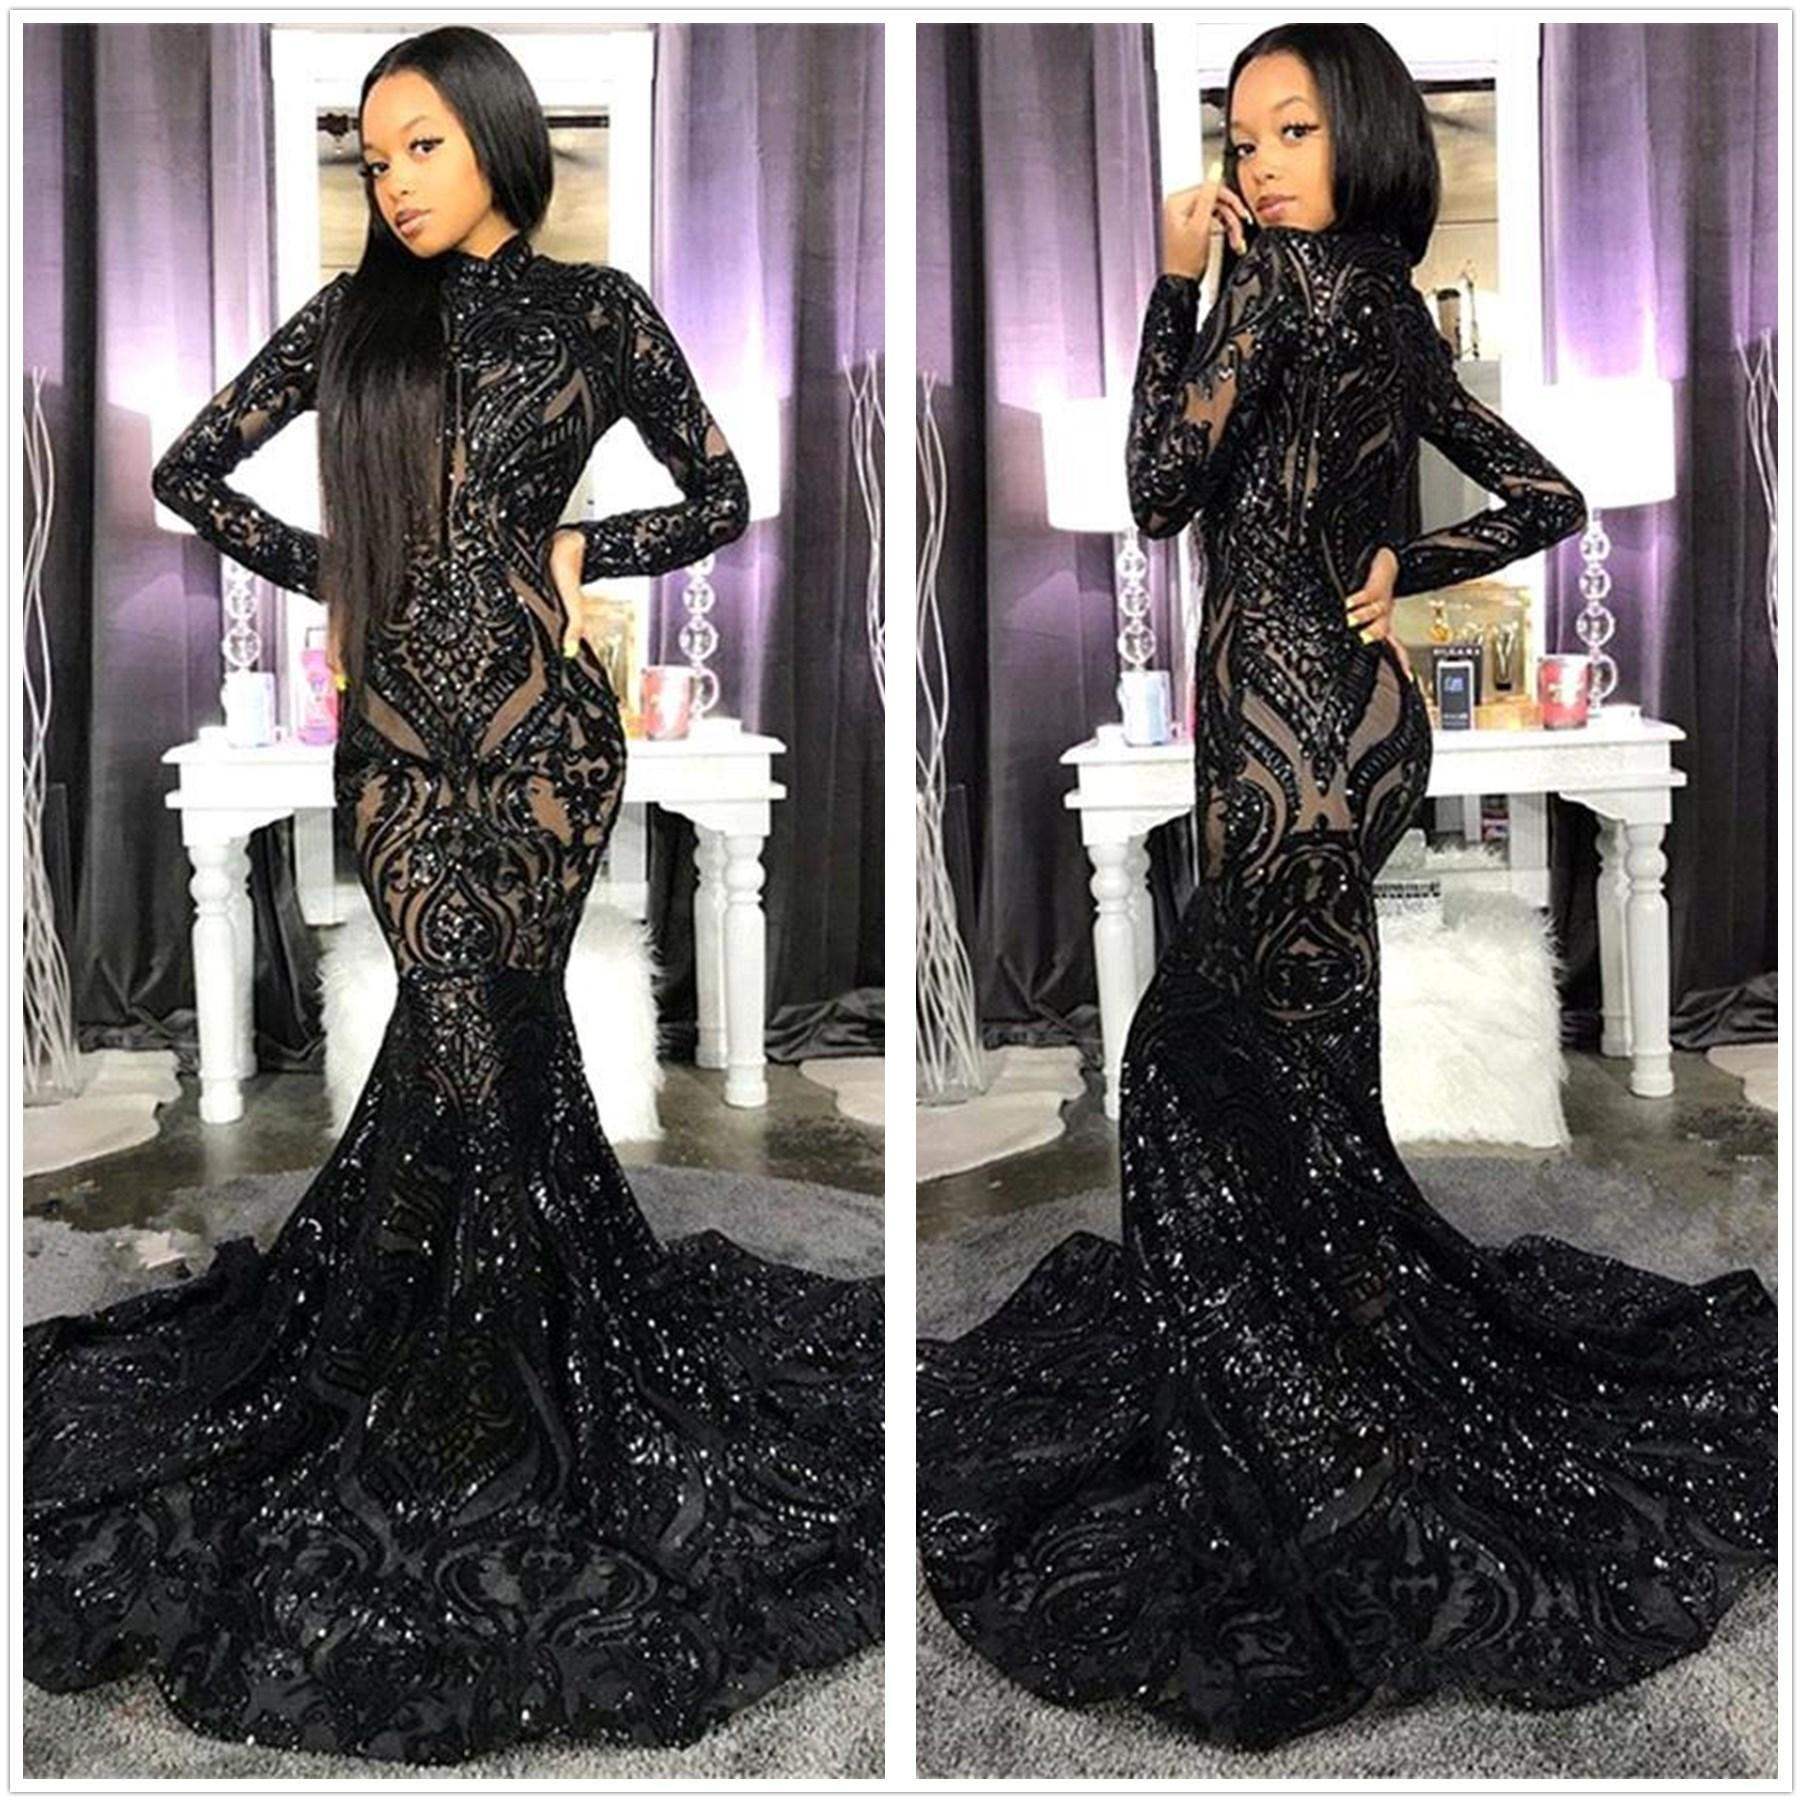 Black Sparkling Sequins Mermaid Prom Dresses 2020 High Neck Illusion Long Sleeves Sweep Train Formal Party Evening Gowns BC4122